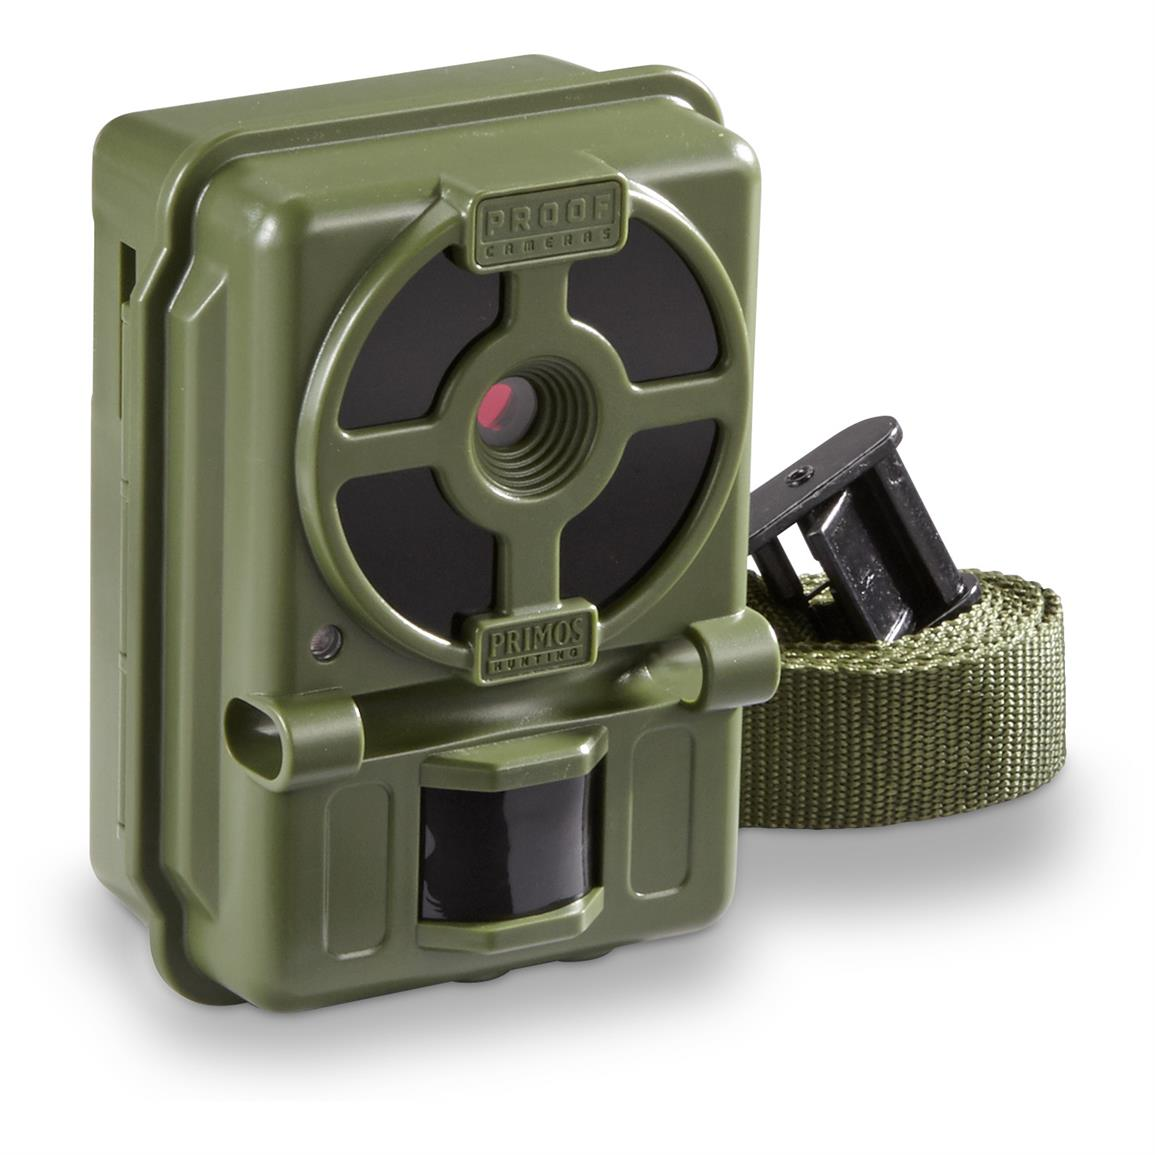 Primos Proof Cam 10MP Low Glow Trail Camera, Olive Drab Green